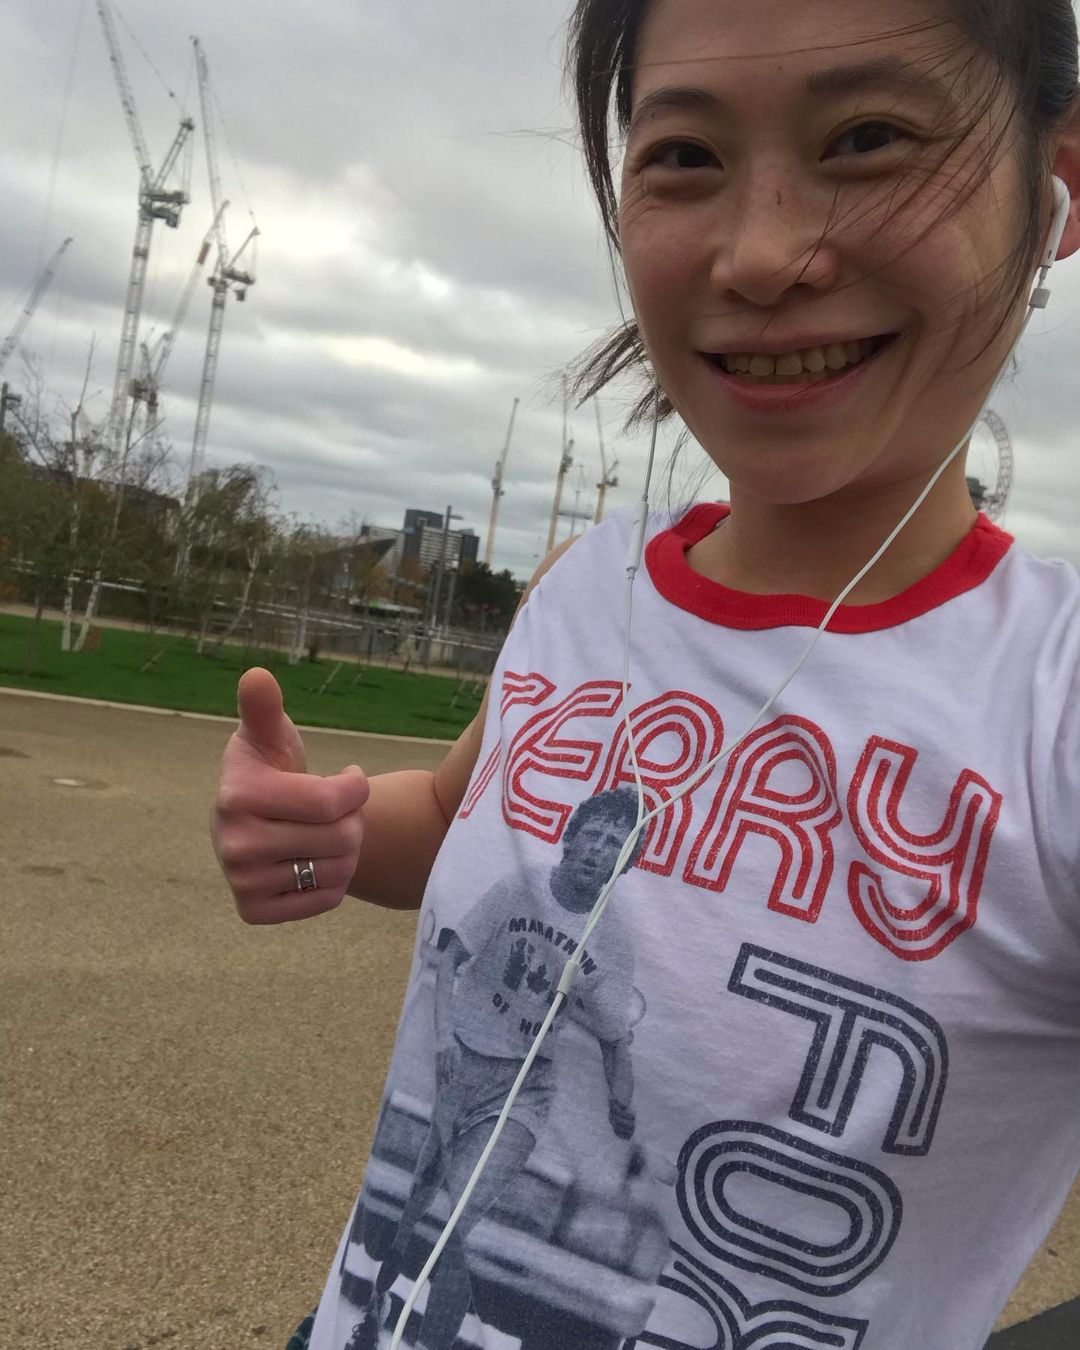 Edwina Lo from Vancouver has lived in London since 2014. She is flying home for the holidays, and will quarantine in Canada and again on her return to England.